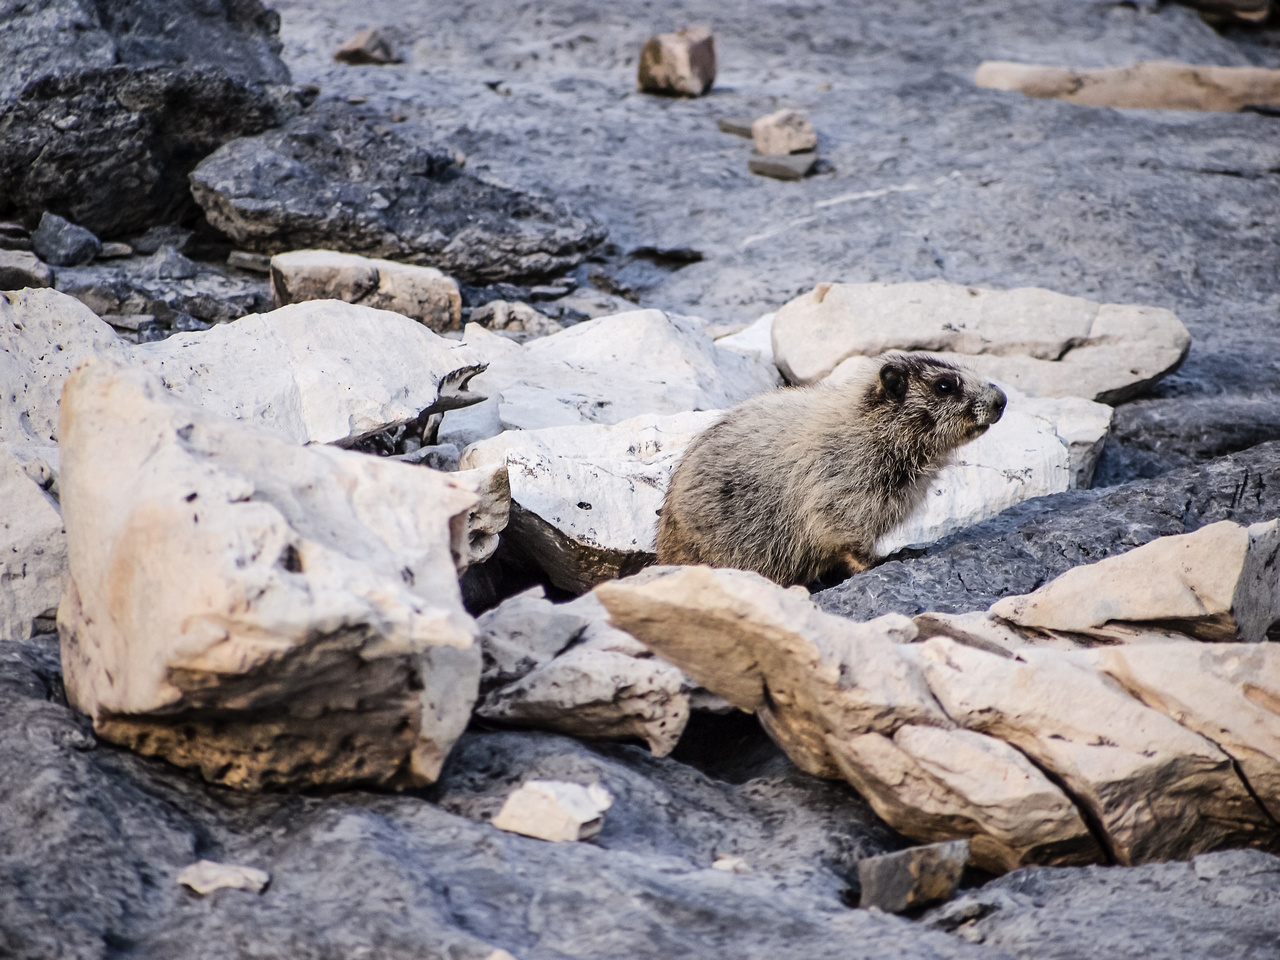 This marmot was intensely curious.